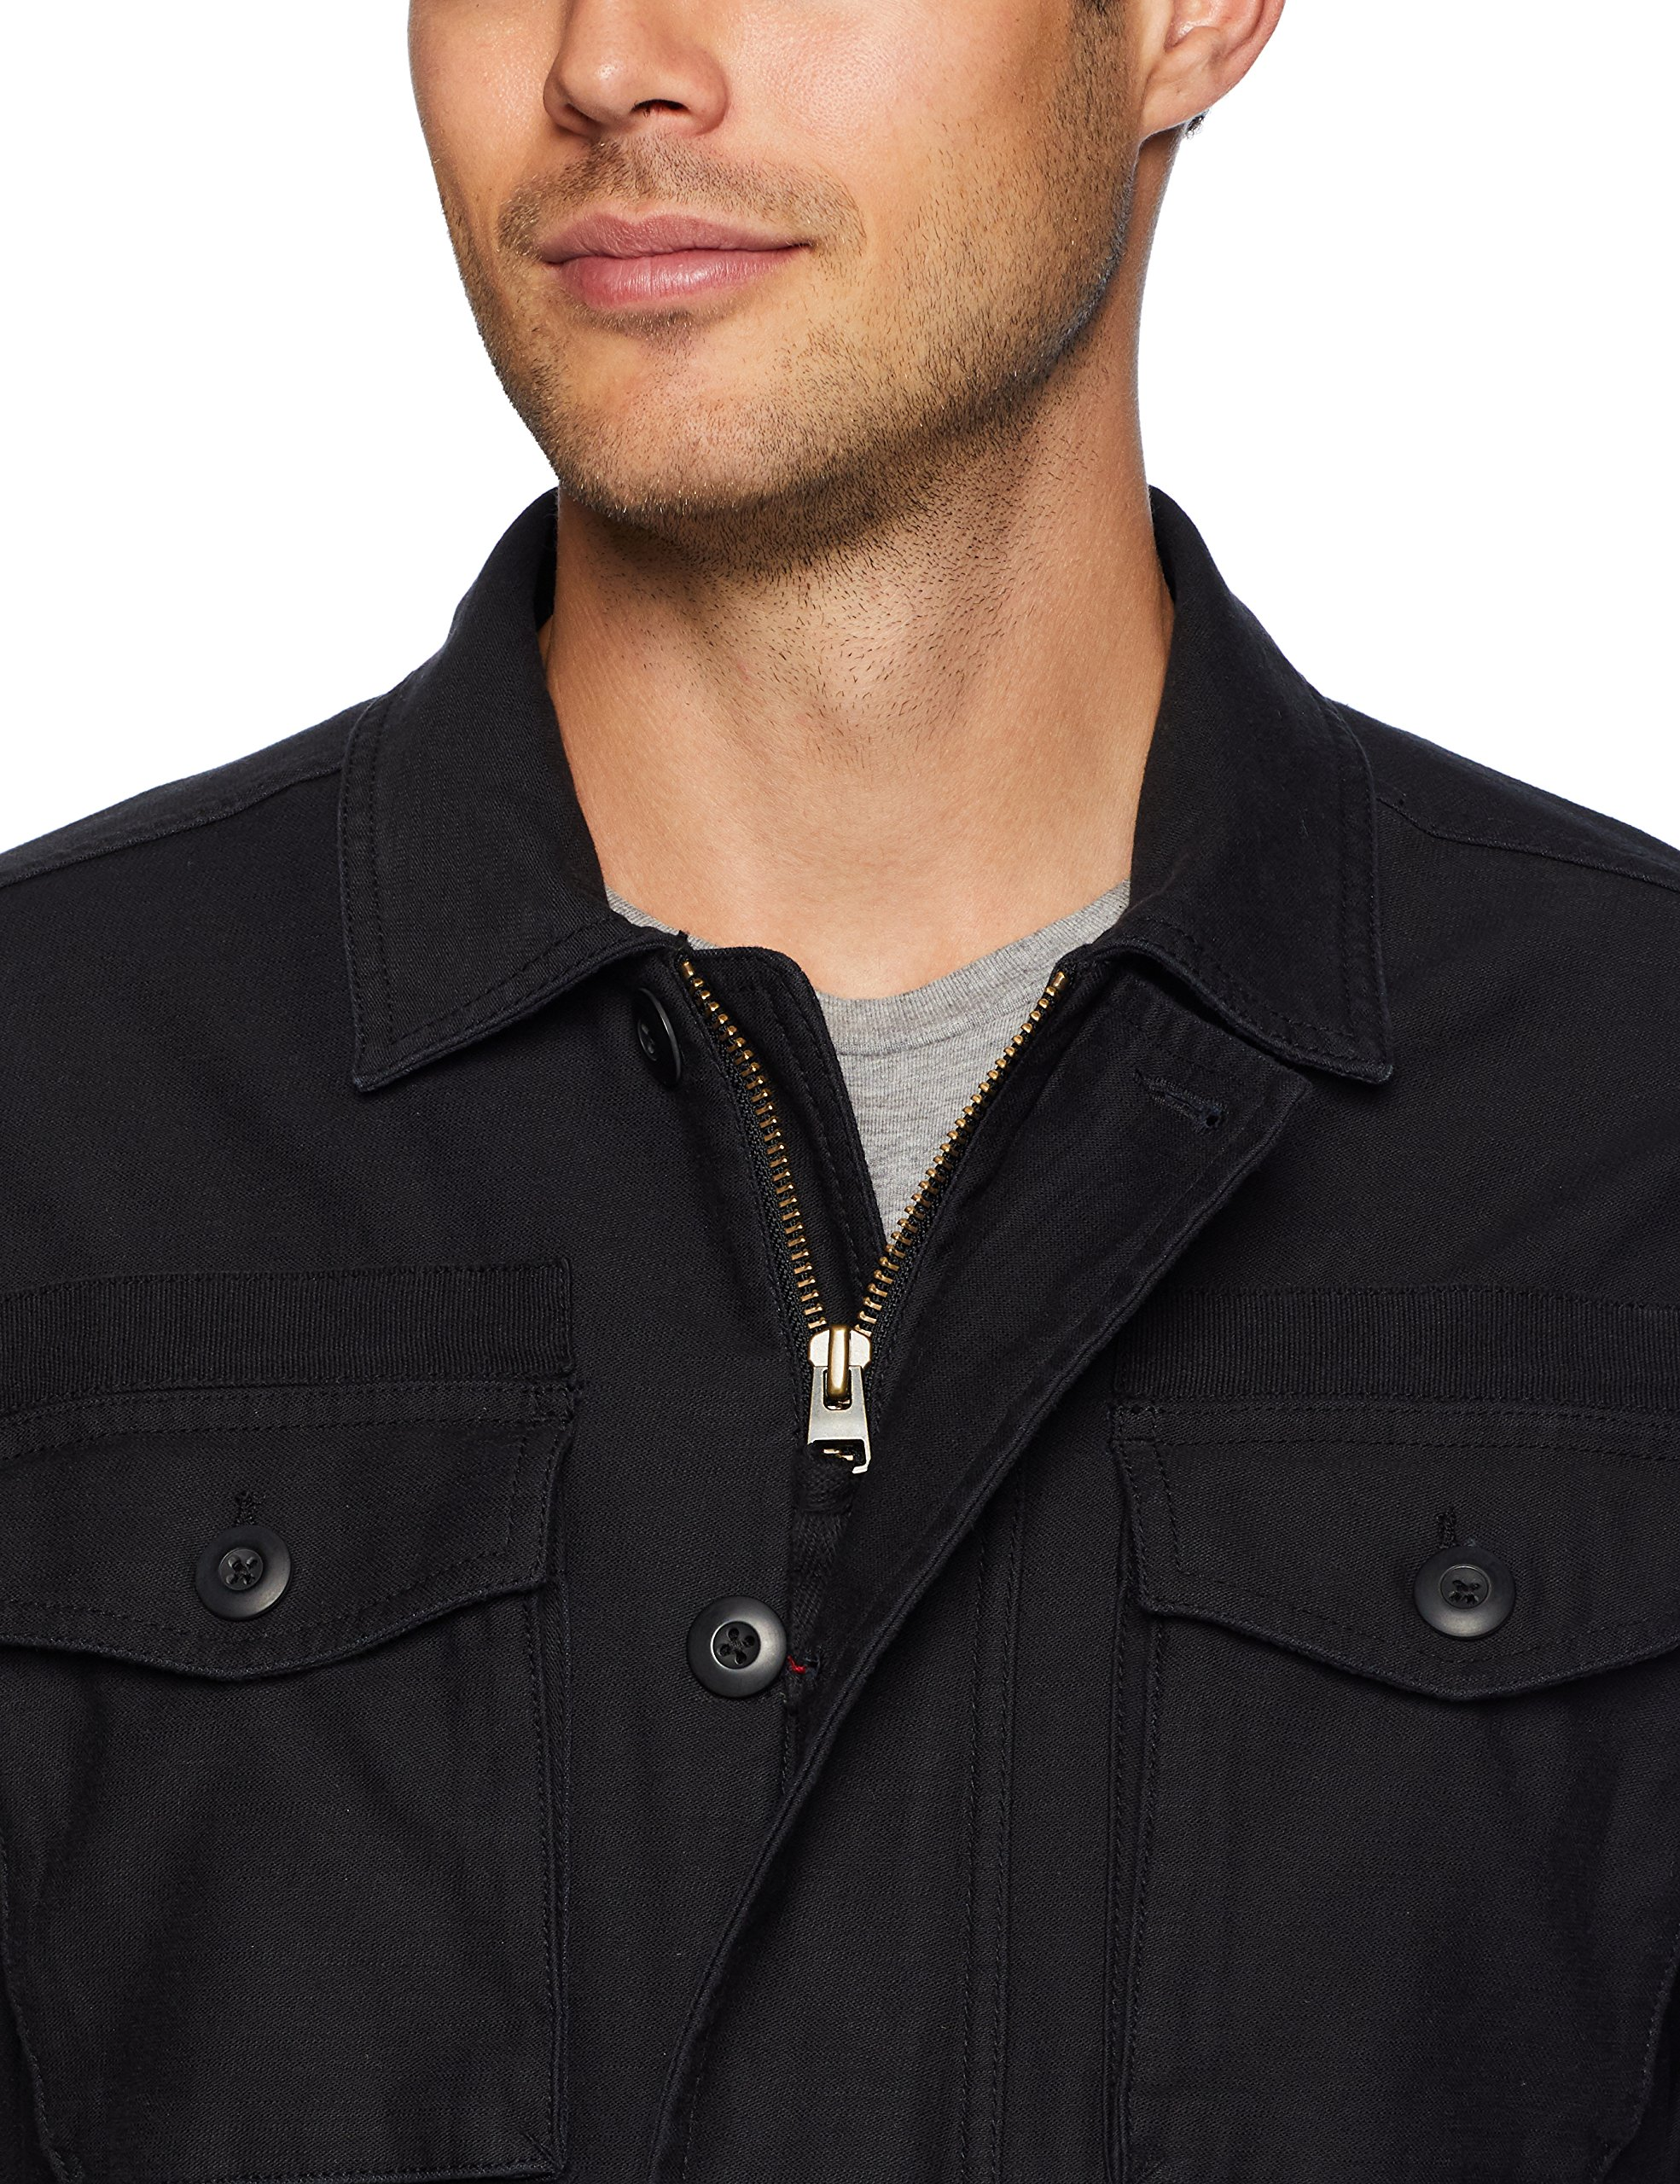 Goodthreads Men's 4-Pocket Military Jacket, Caviar/Black, Large by Goodthreads (Image #4)